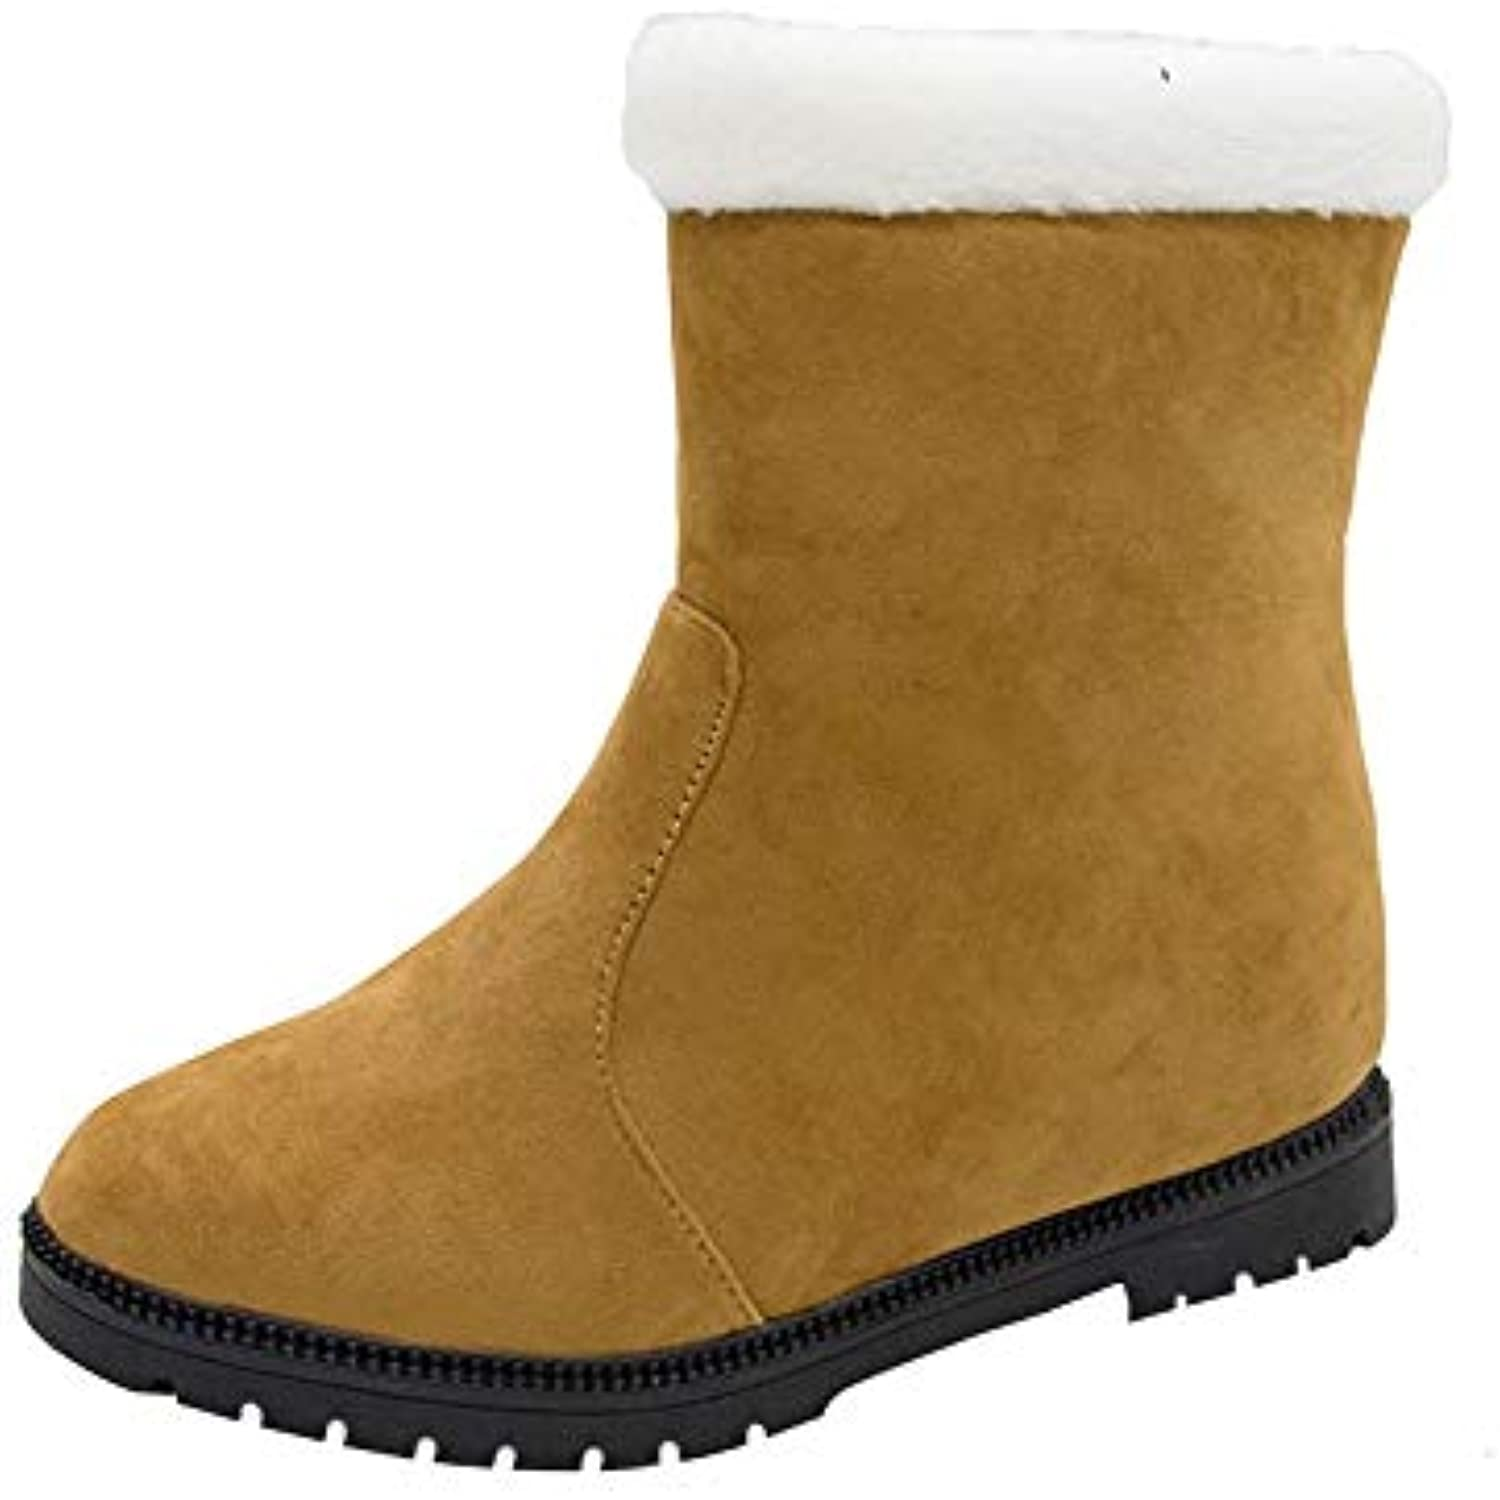 Bottes Femmes Chaussures Hiver,GongzhuMM Chaussures Femmes Femme Hiver Pas  Cher Bottes de Neige Plates. « 49df8705cbe8